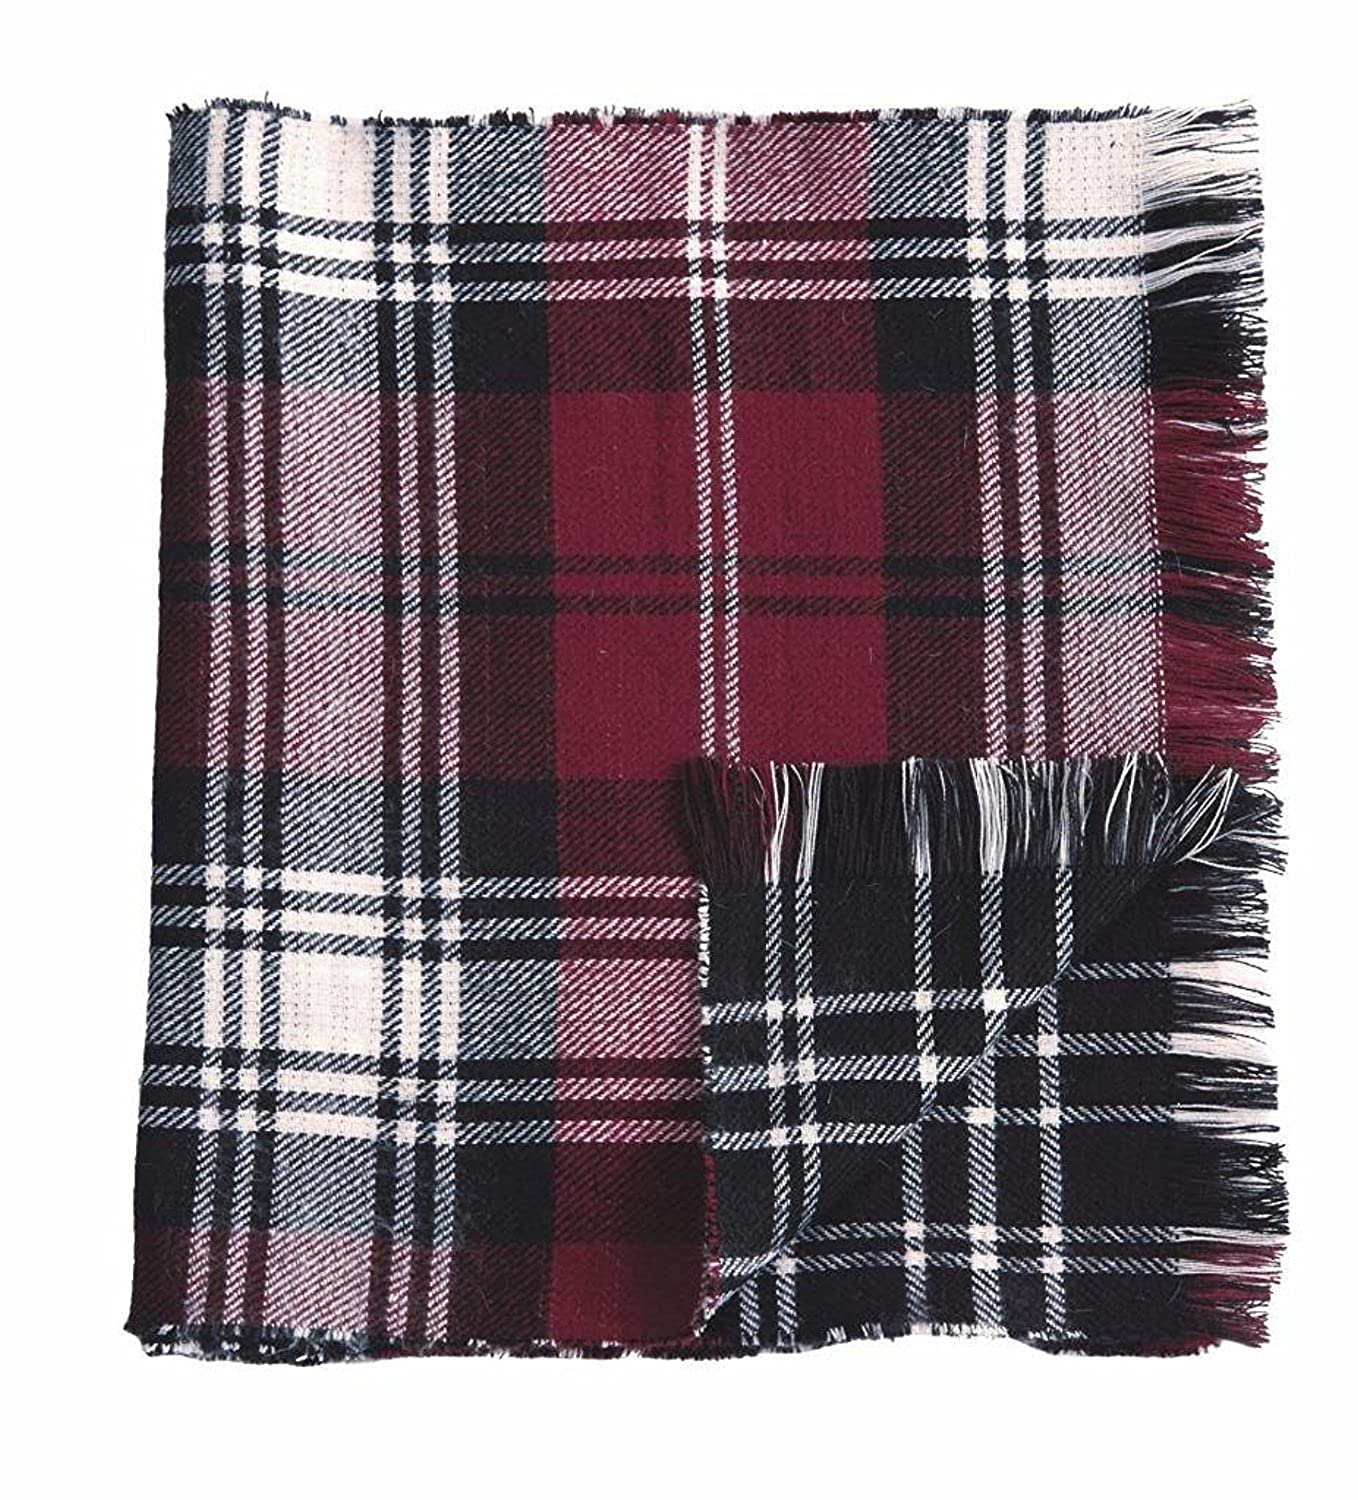 d82f04a03a1 Mud Pie Knit Plaid Blanket Reversible Scarf